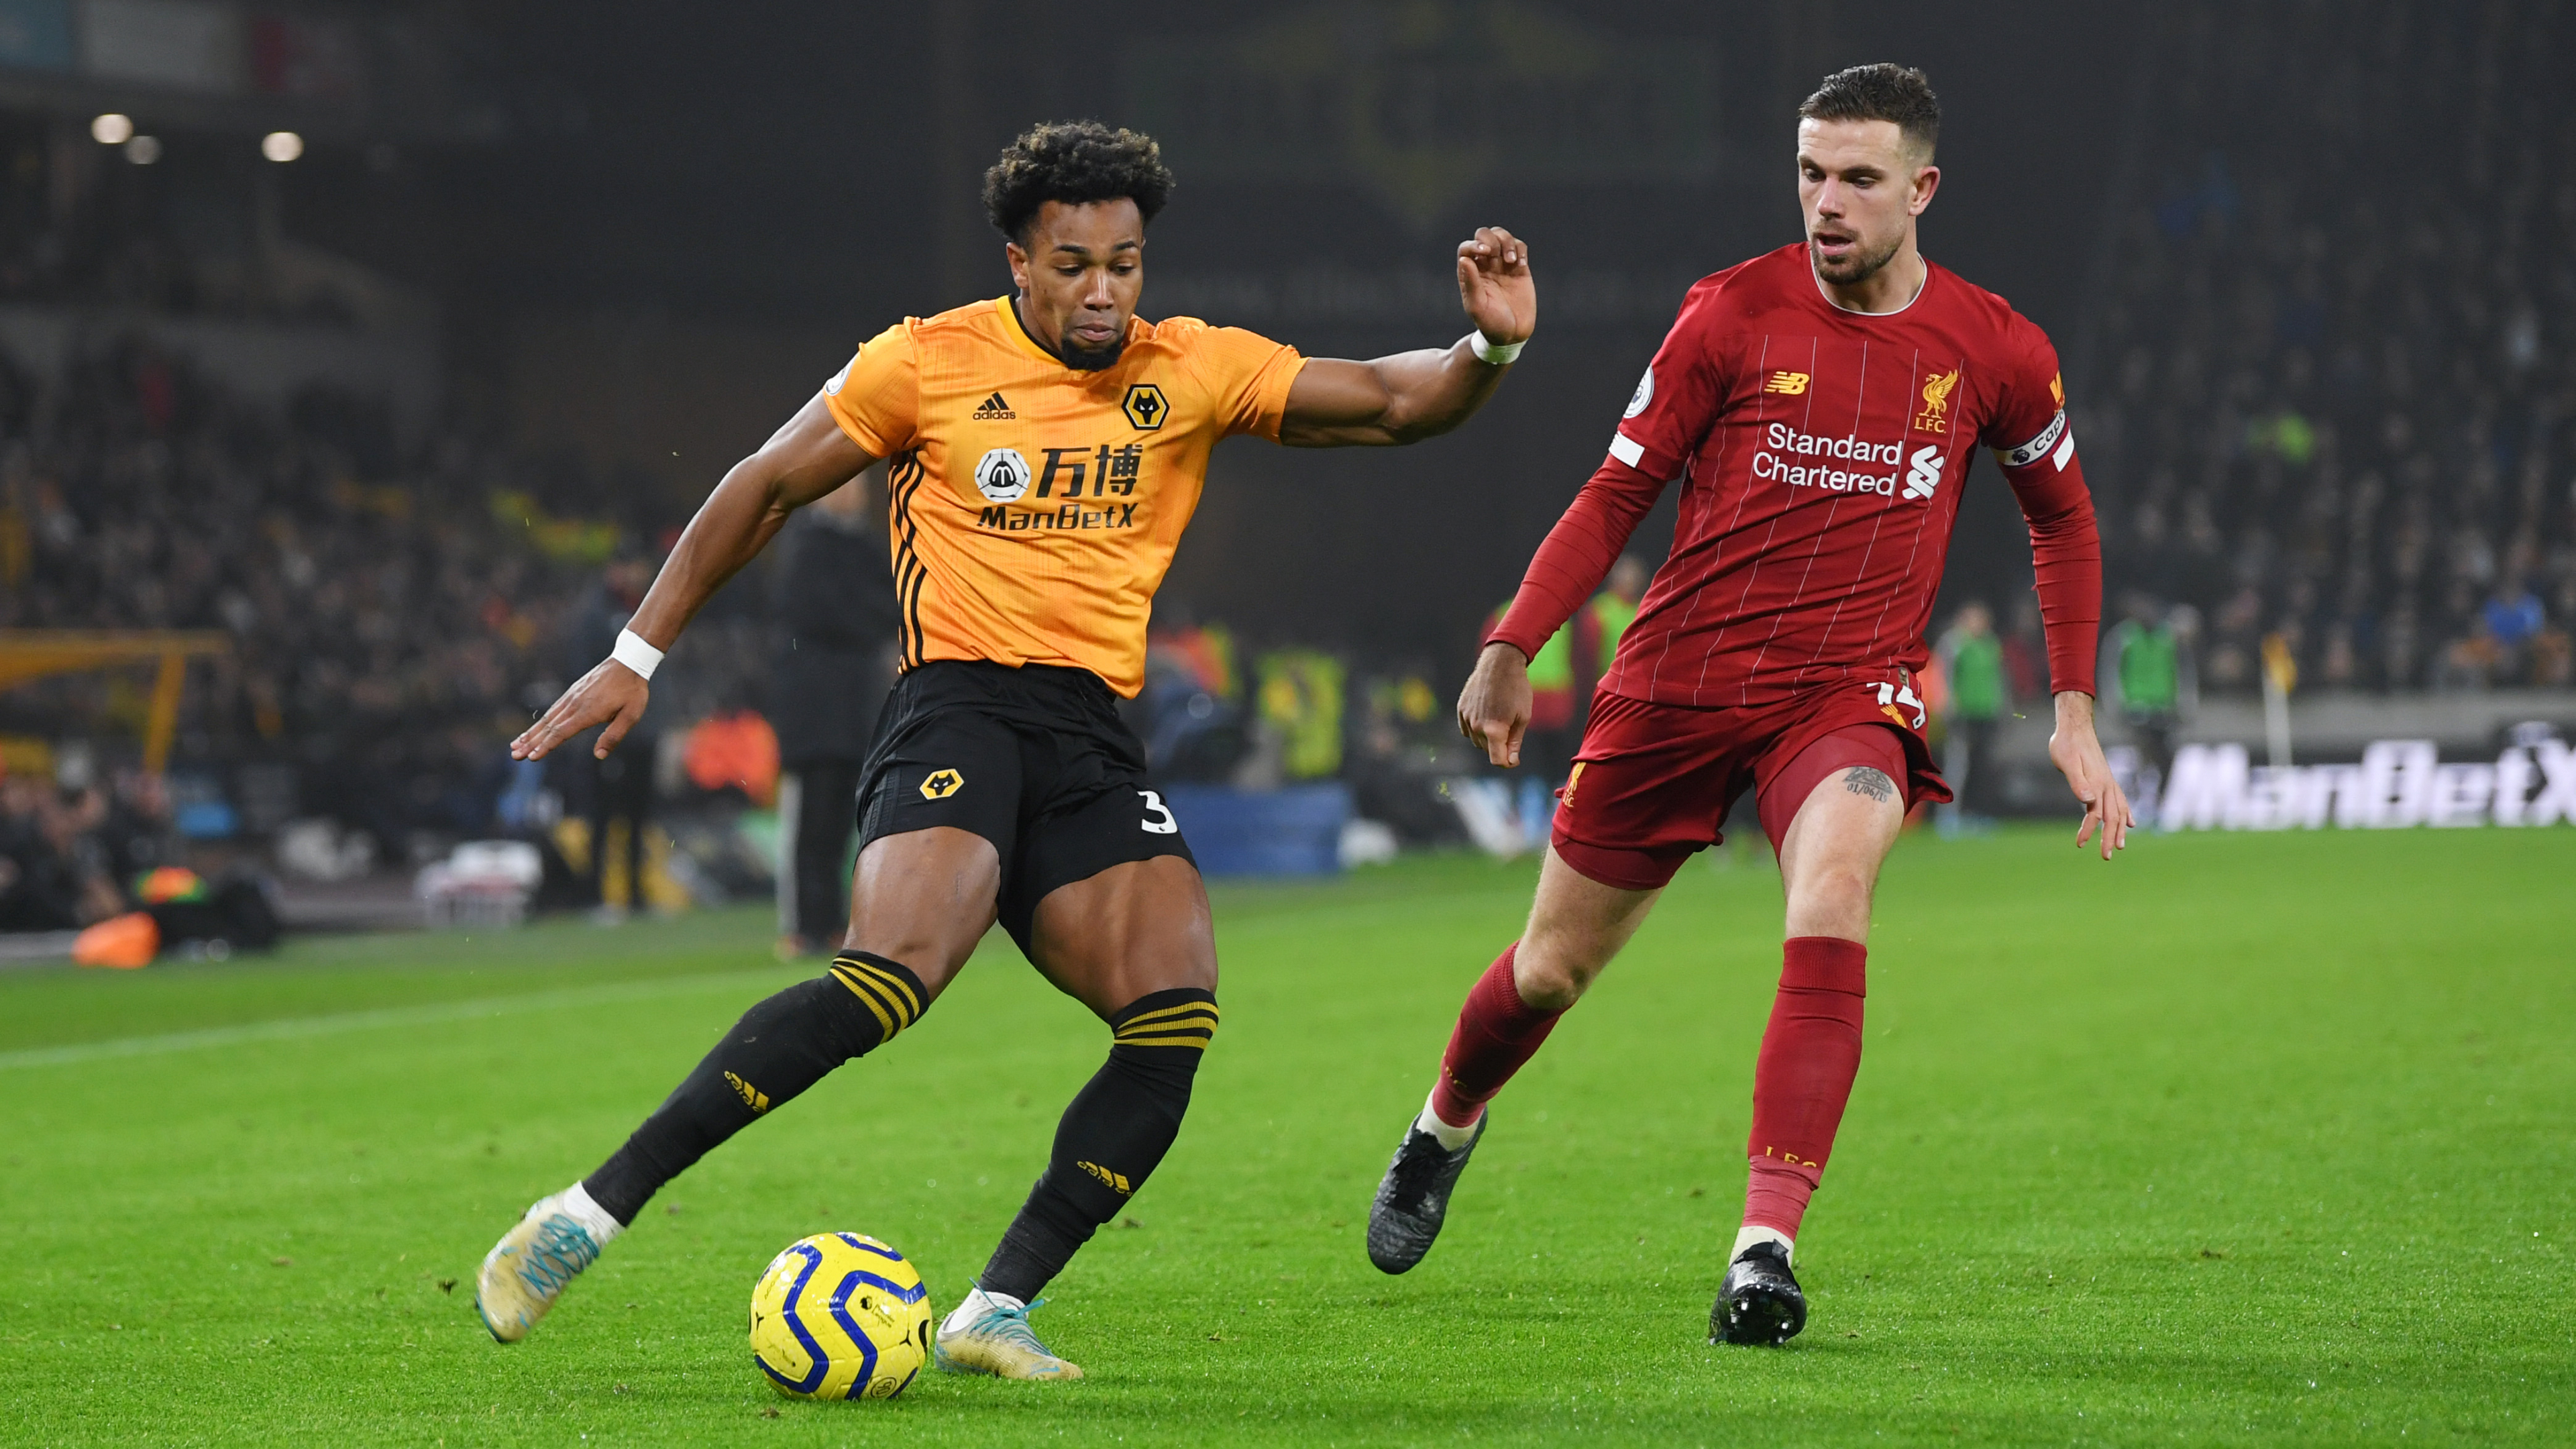 'Traore is unplayable' – Liverpool boss Klopp in awe of Wolves winger